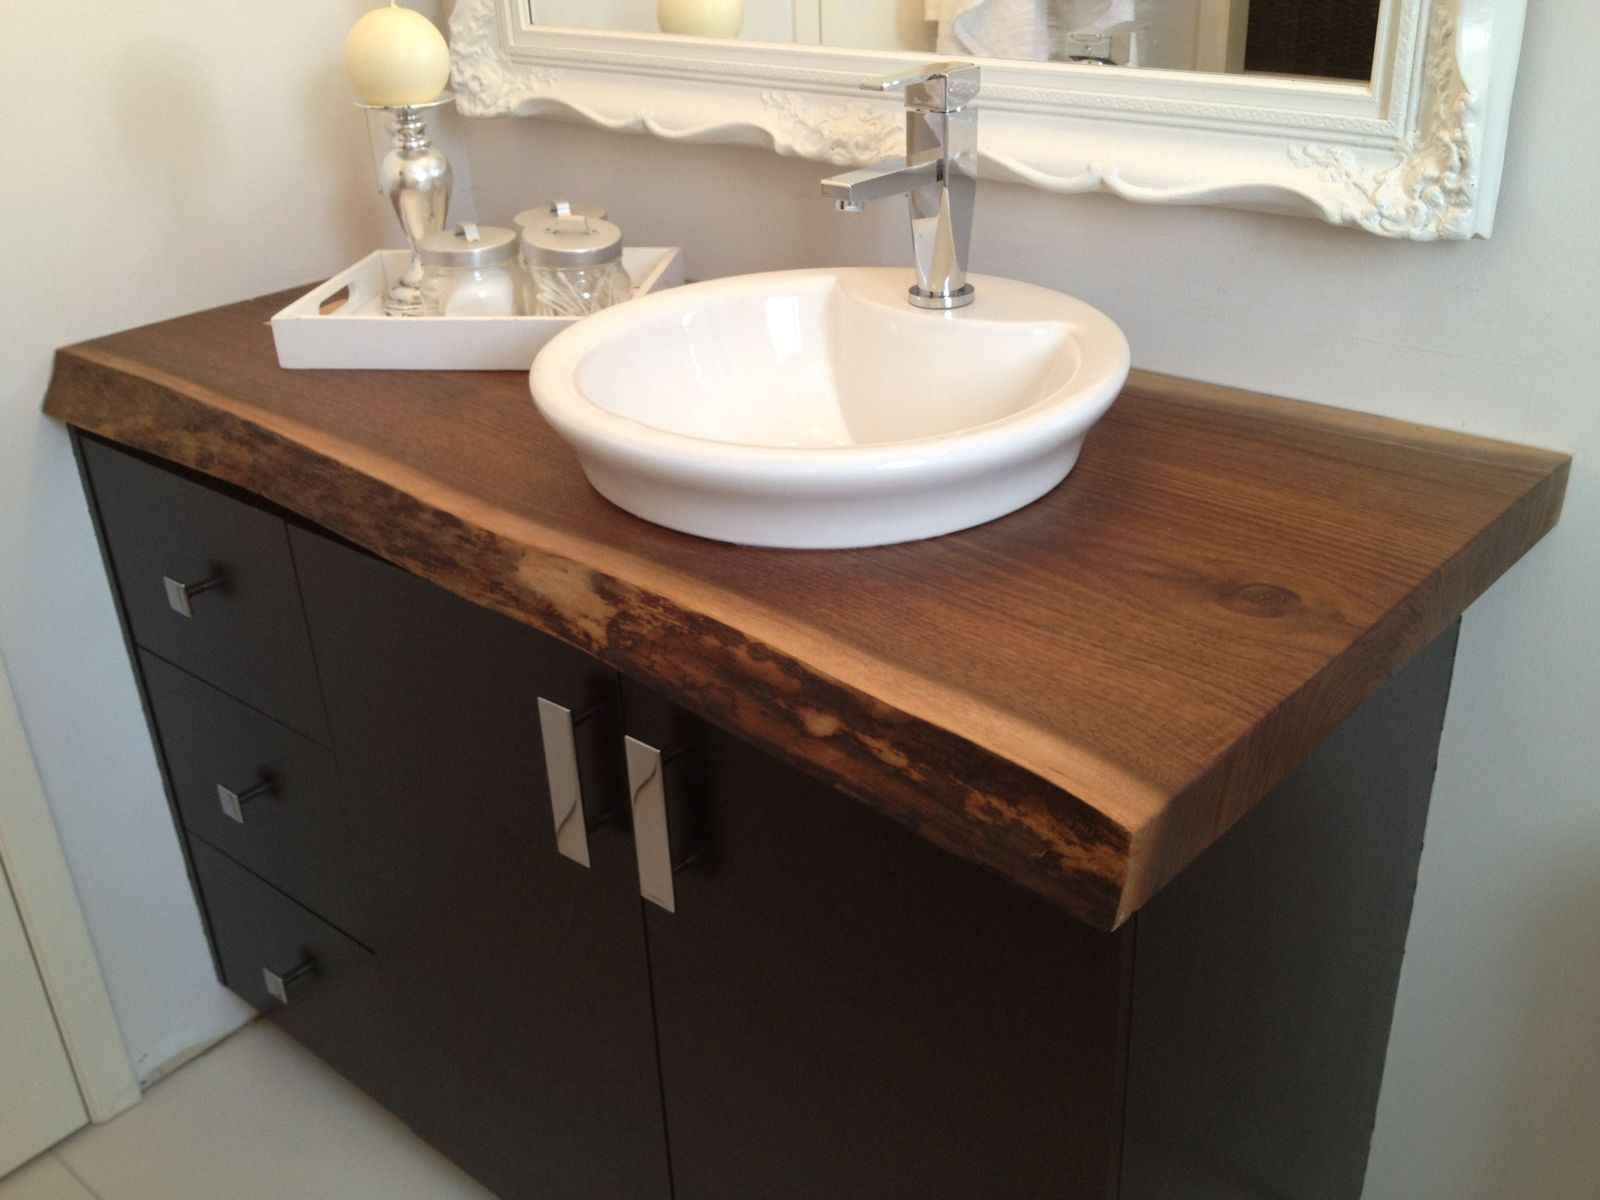 Hand made live edge black walnut bathroom countertop by for Bathroom countertops